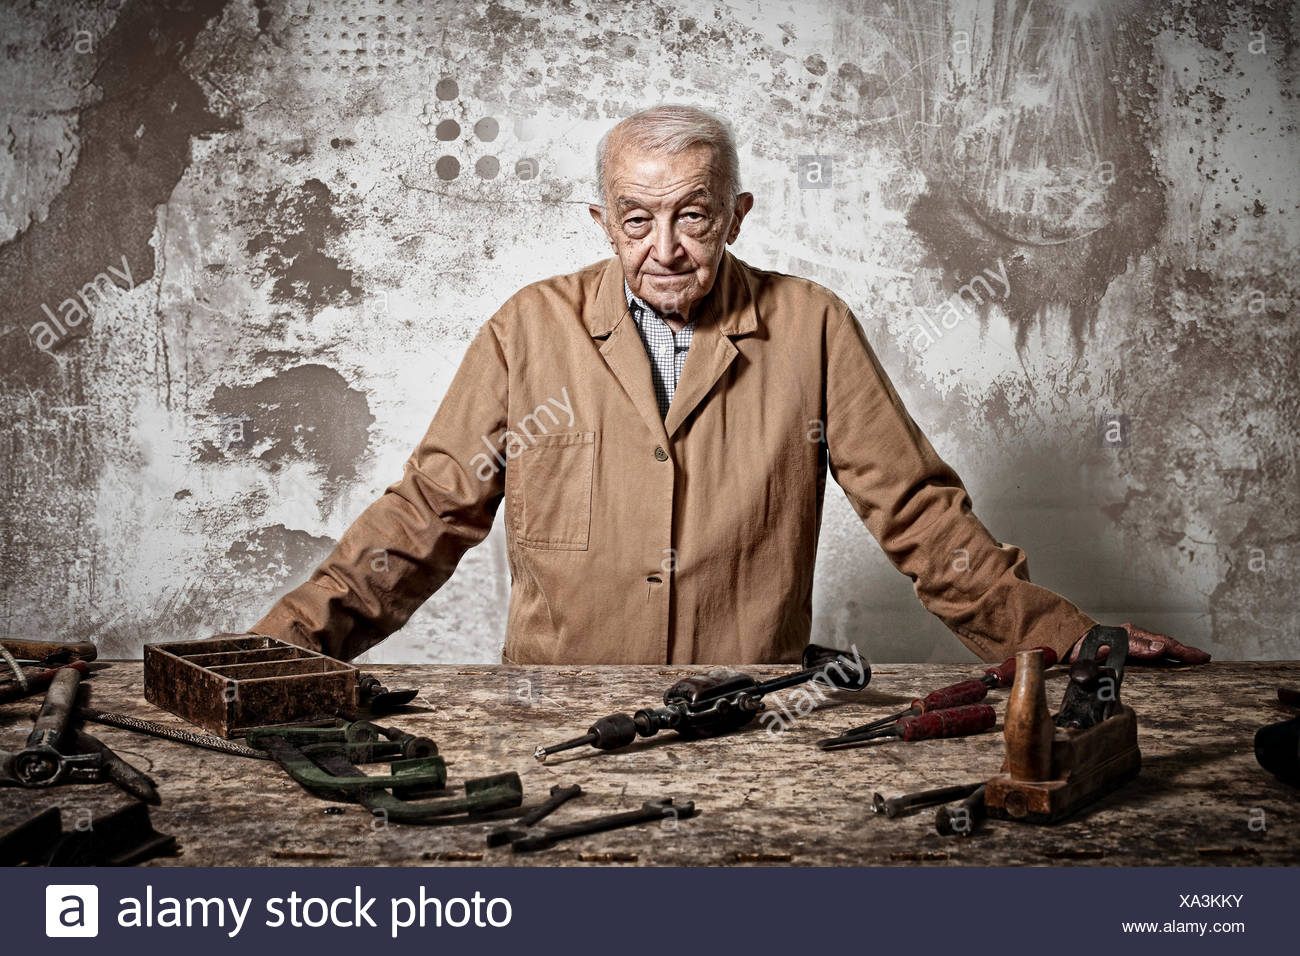 old manual worker - Stock Image